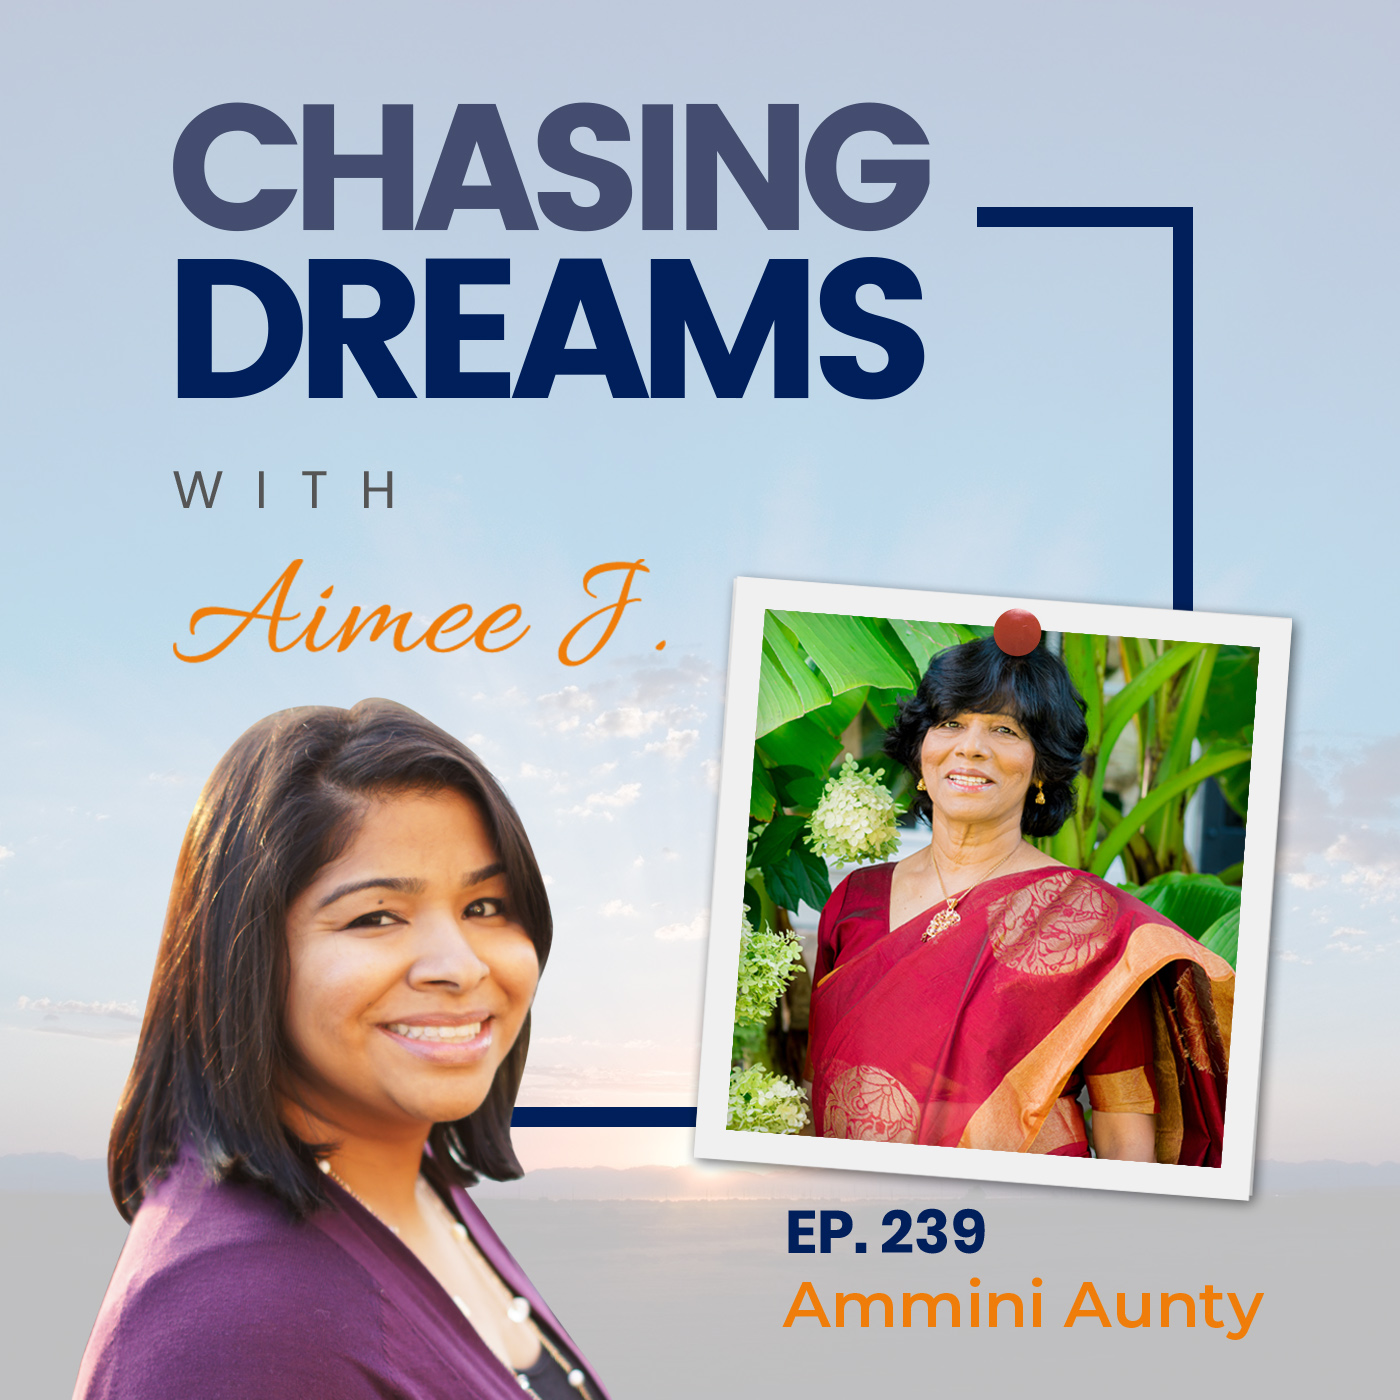 Ep. 239: Ammini Aunty – If You Put Your Mind to It, You Can Do It